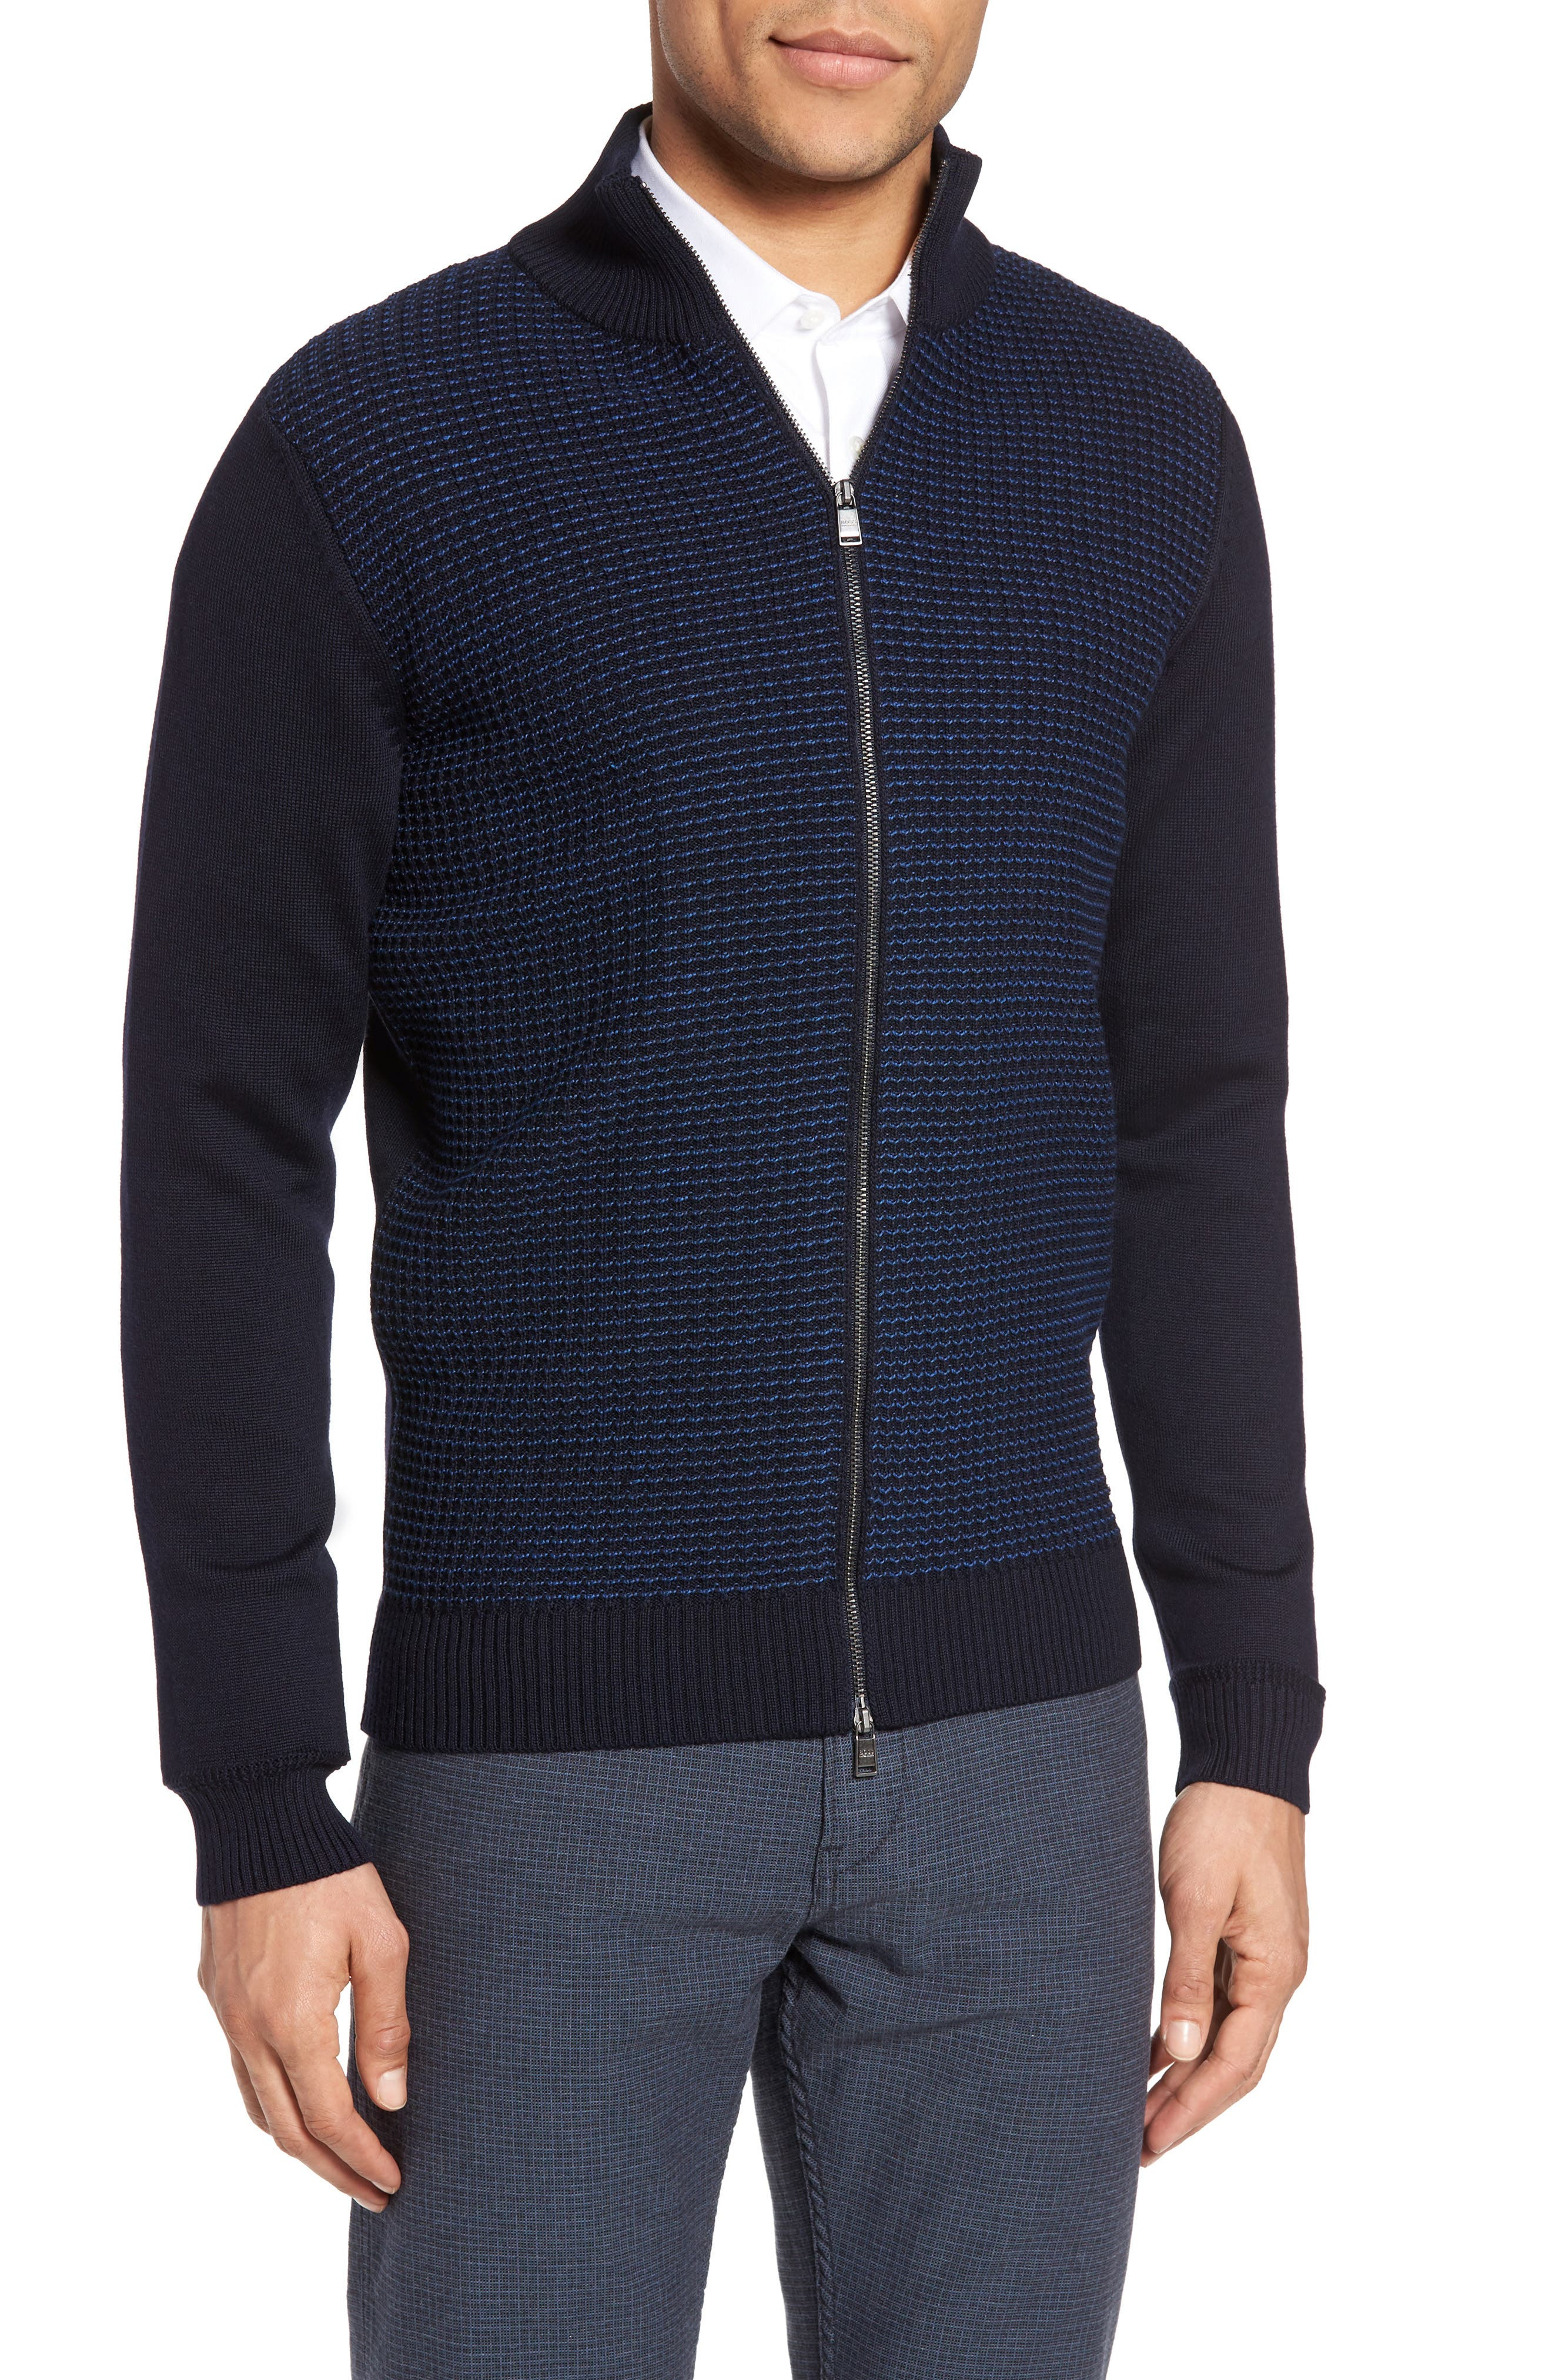 Bacco Full Zip Wool Sweater Jacket,                         Main,                         color, Navy